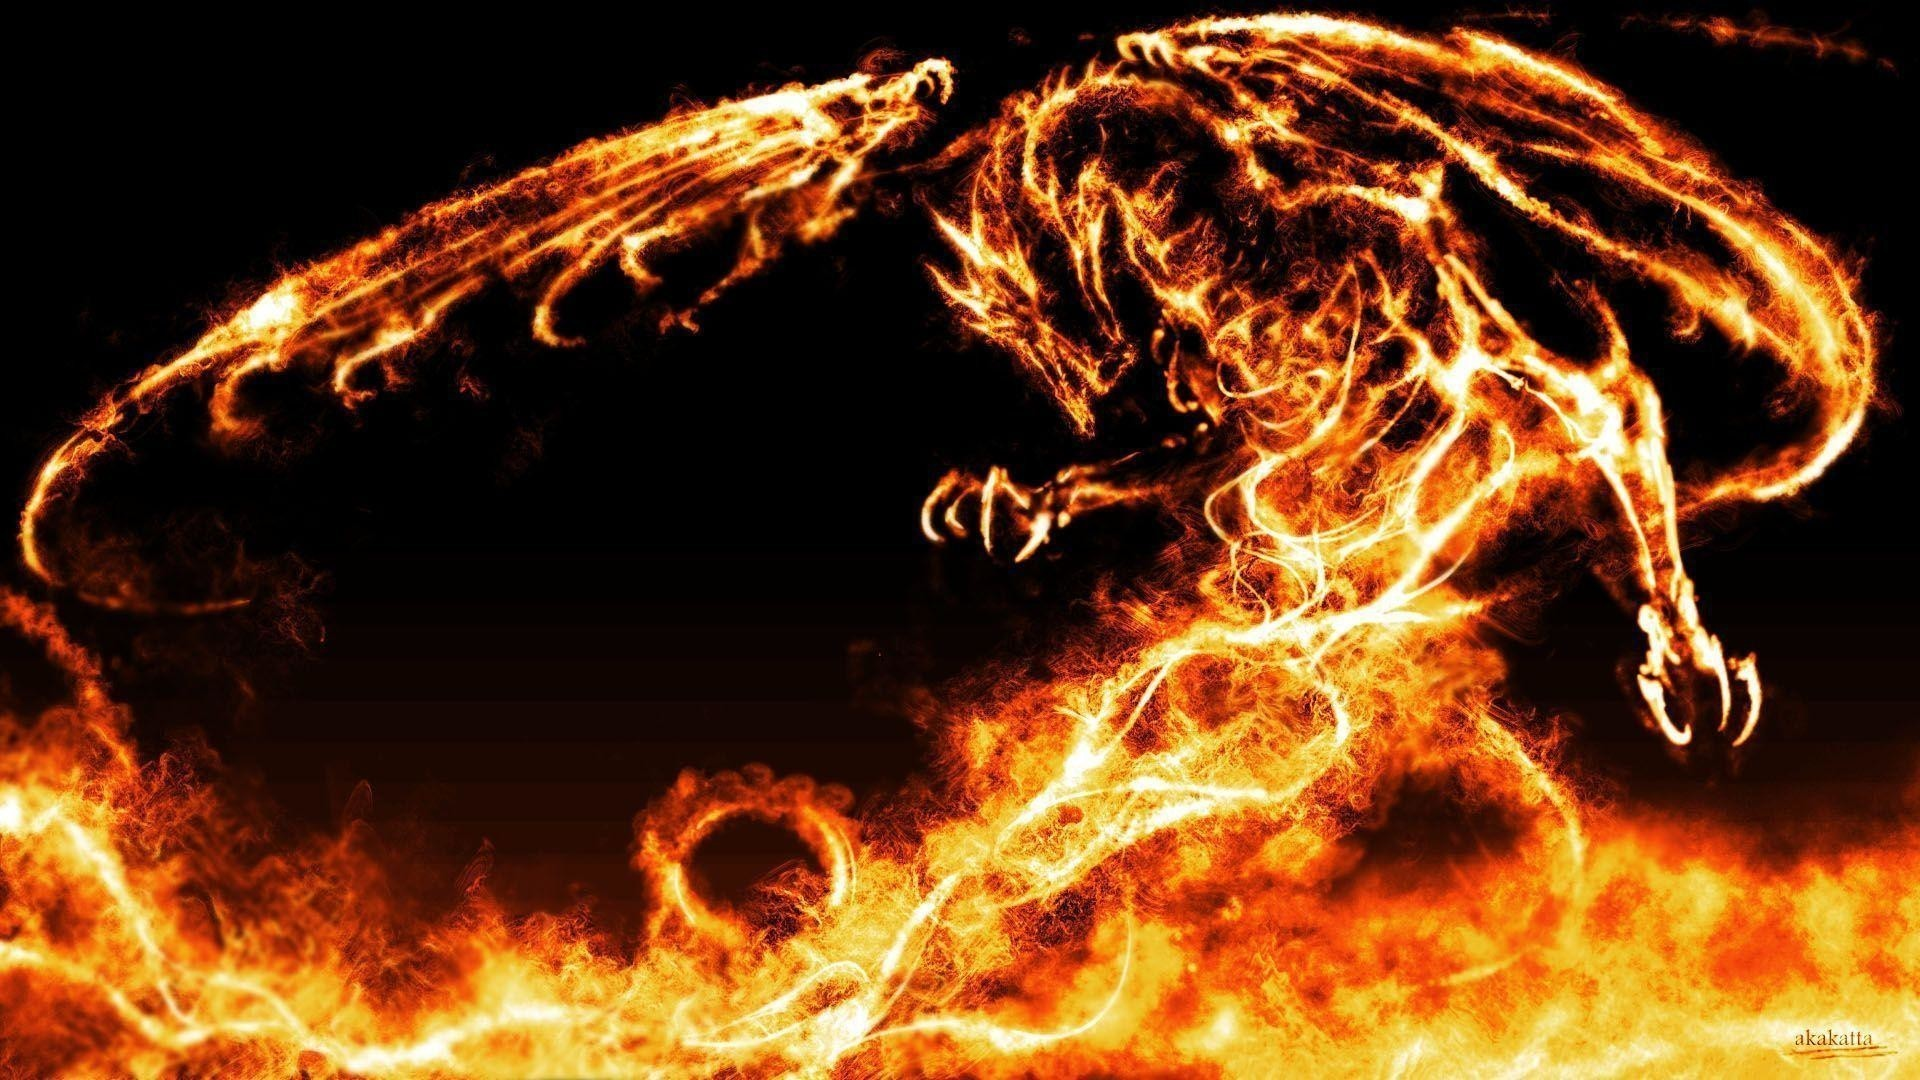 Fire wallpapers hd 72 background pictures 2560x1600 fire wallpapers hd thecheapjerseys Gallery